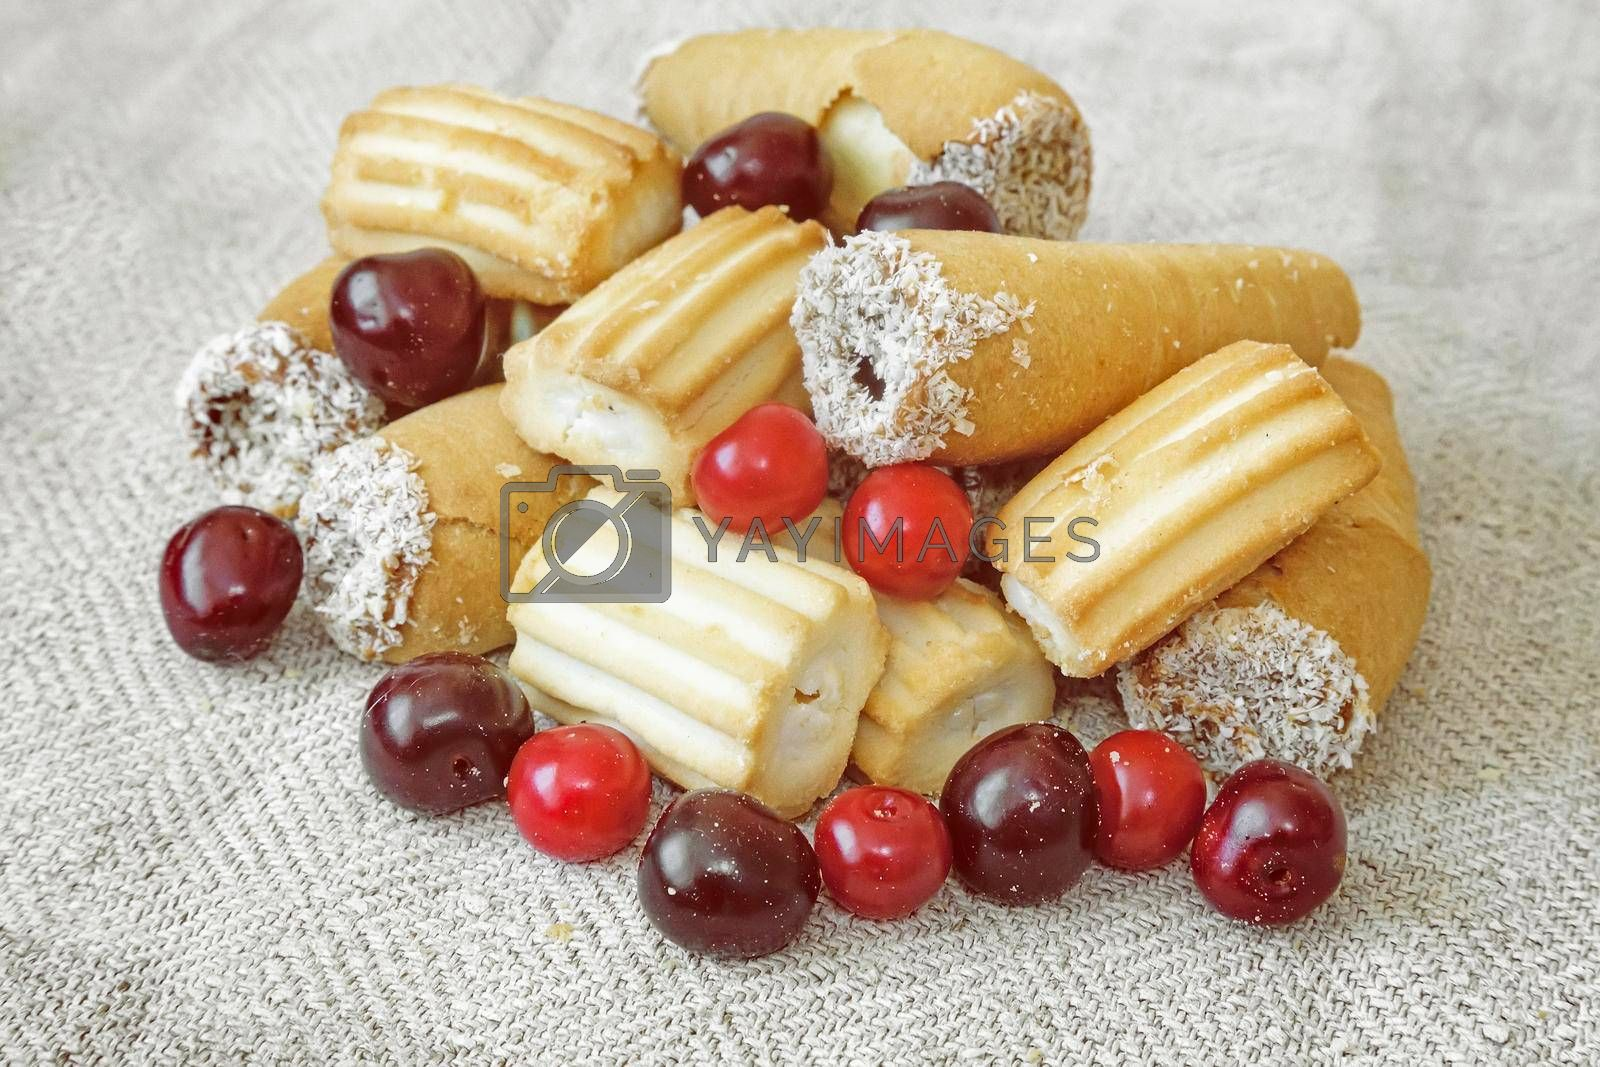 On the napkin on the table biscuits, and cherries.